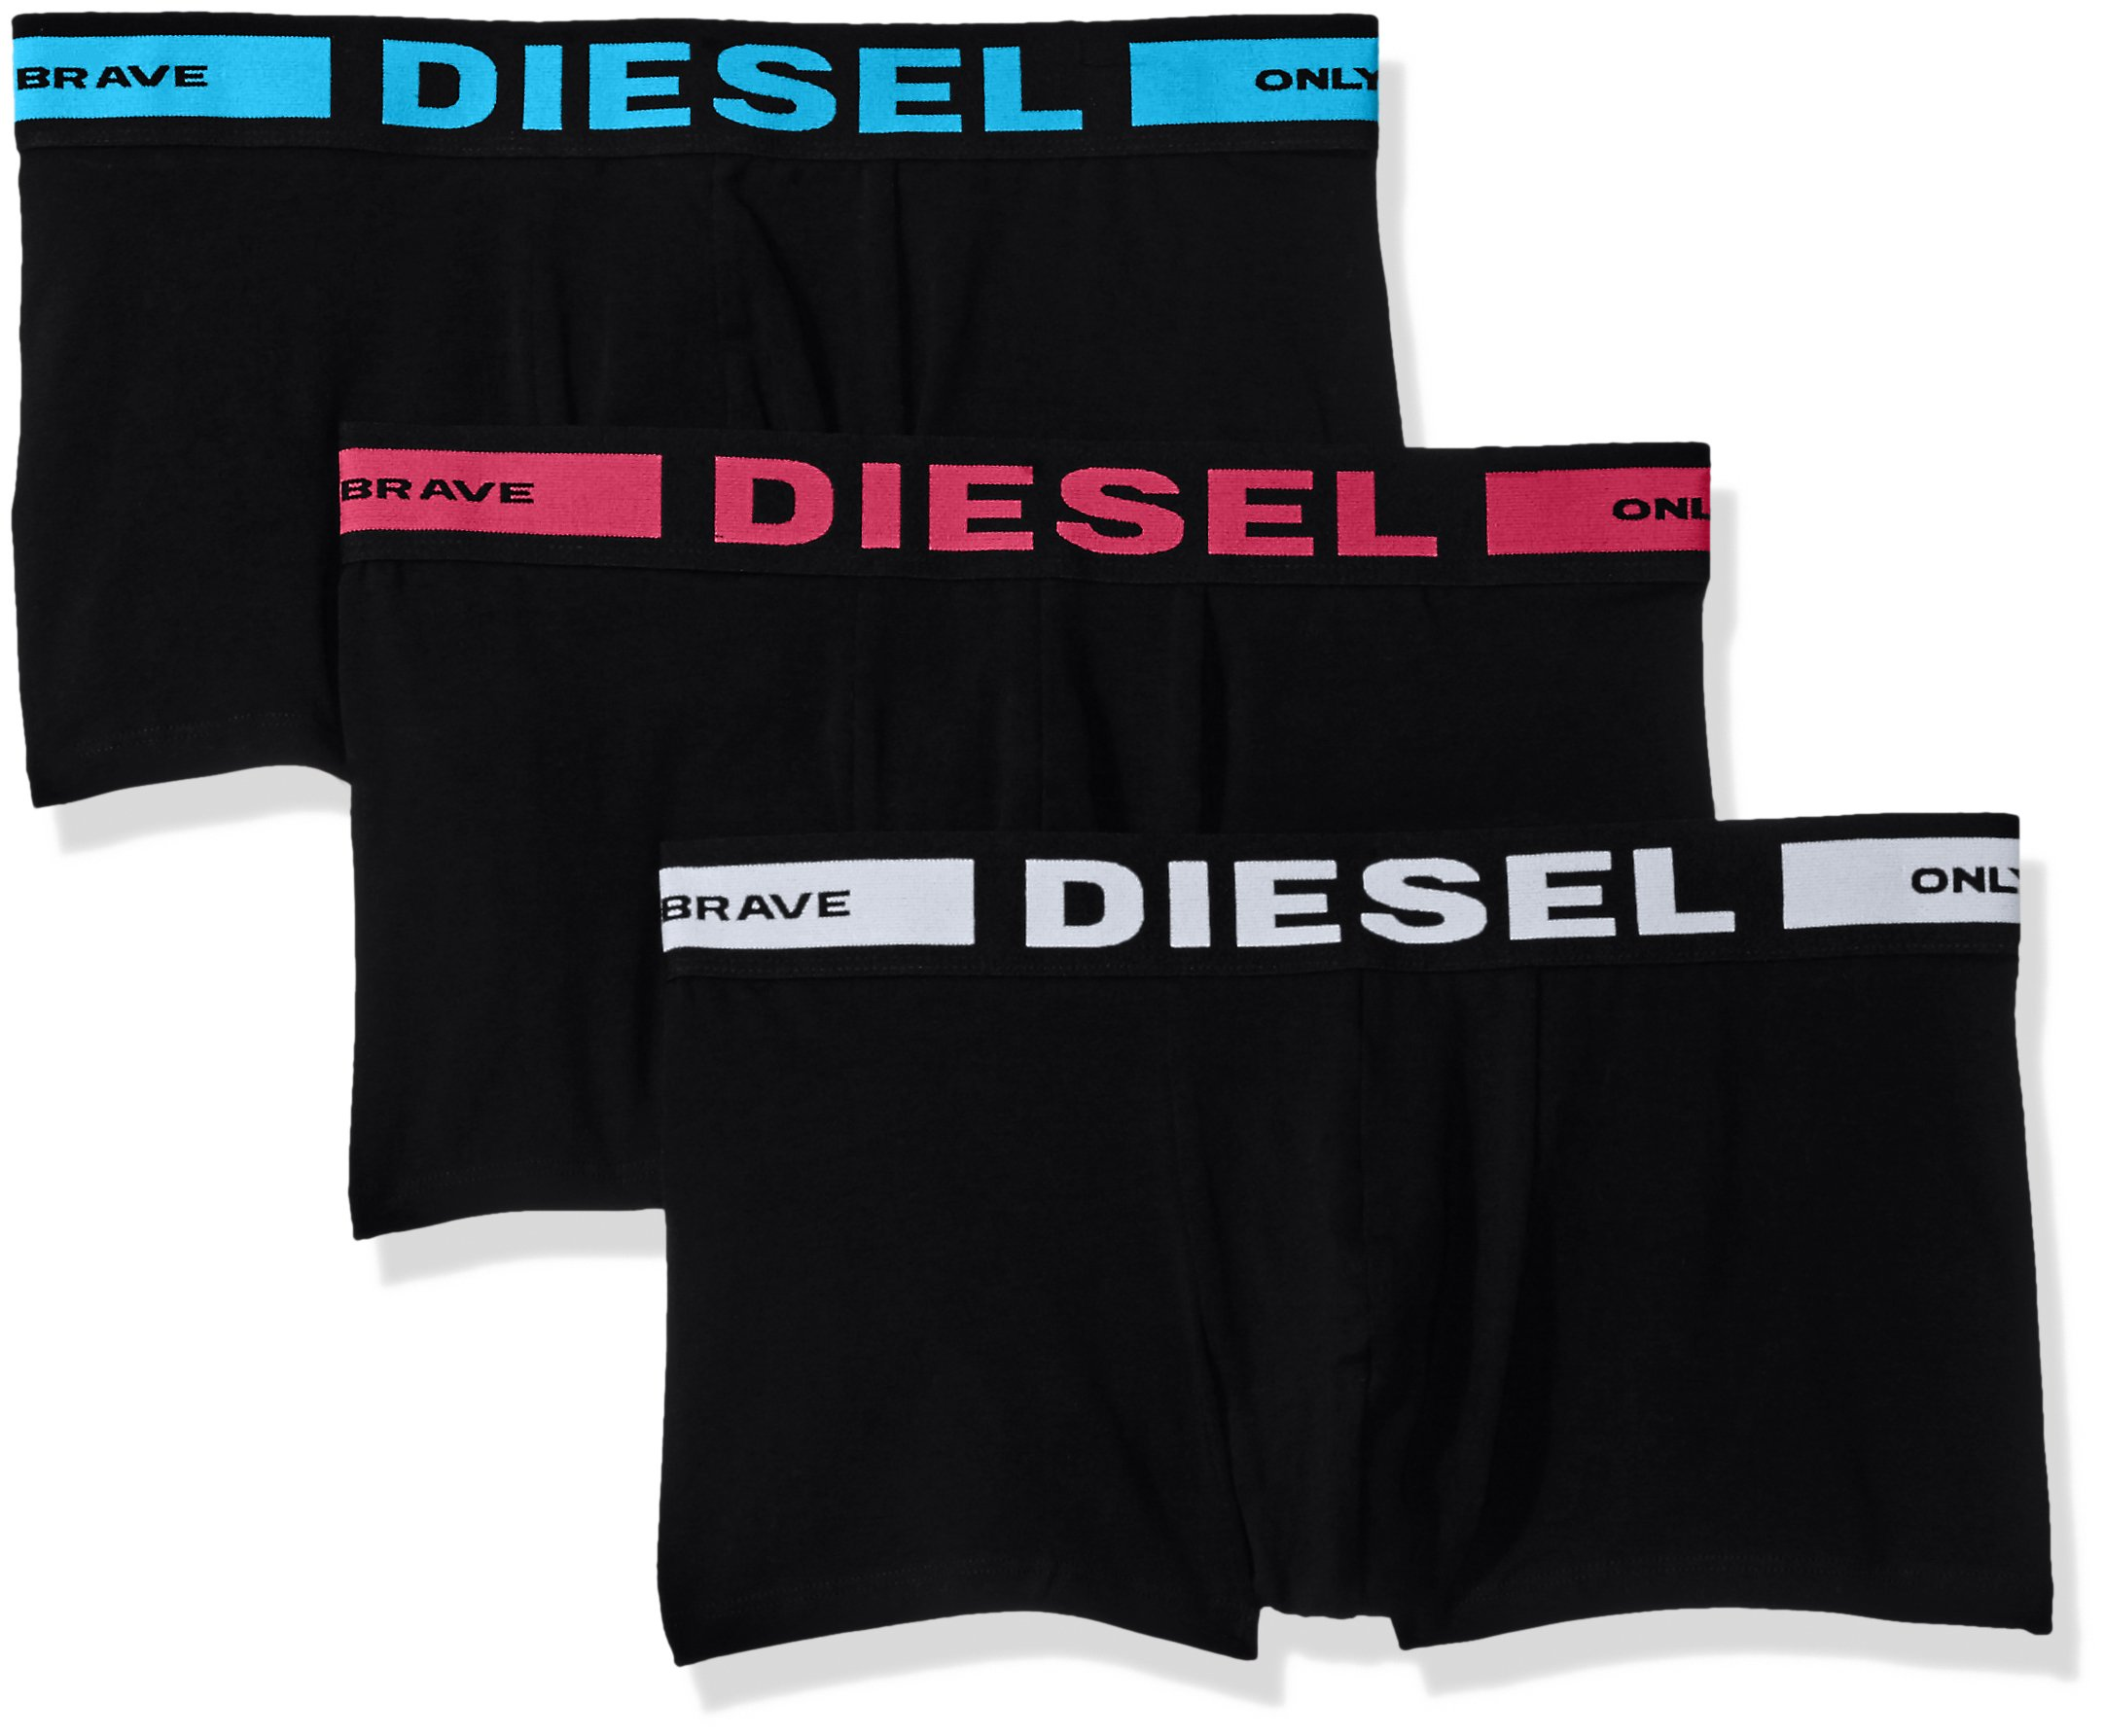 Diesel Men's Essentials 3-Pack Kory Boxer Trunk,Red/White/Blue,M by Diesel (Image #1)